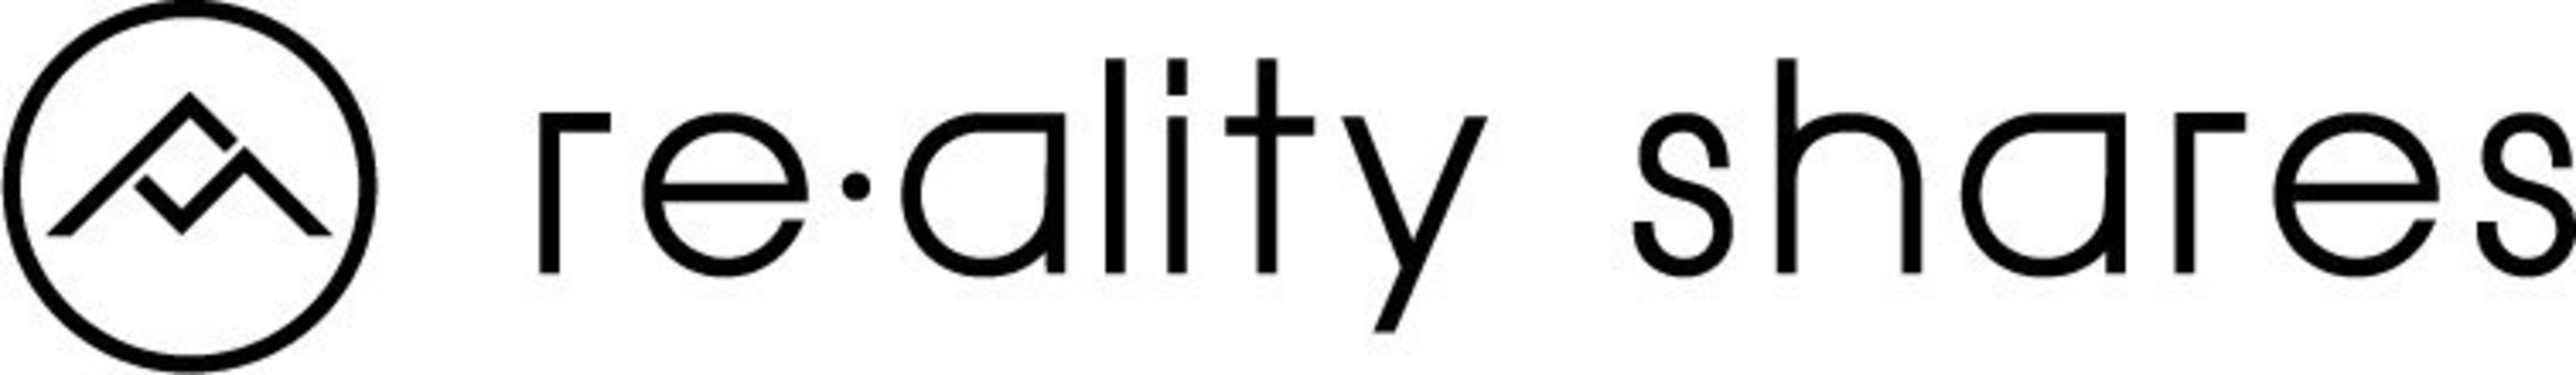 Reality Shares Launches Two Divcon Alternative Dividend Growth Etfs